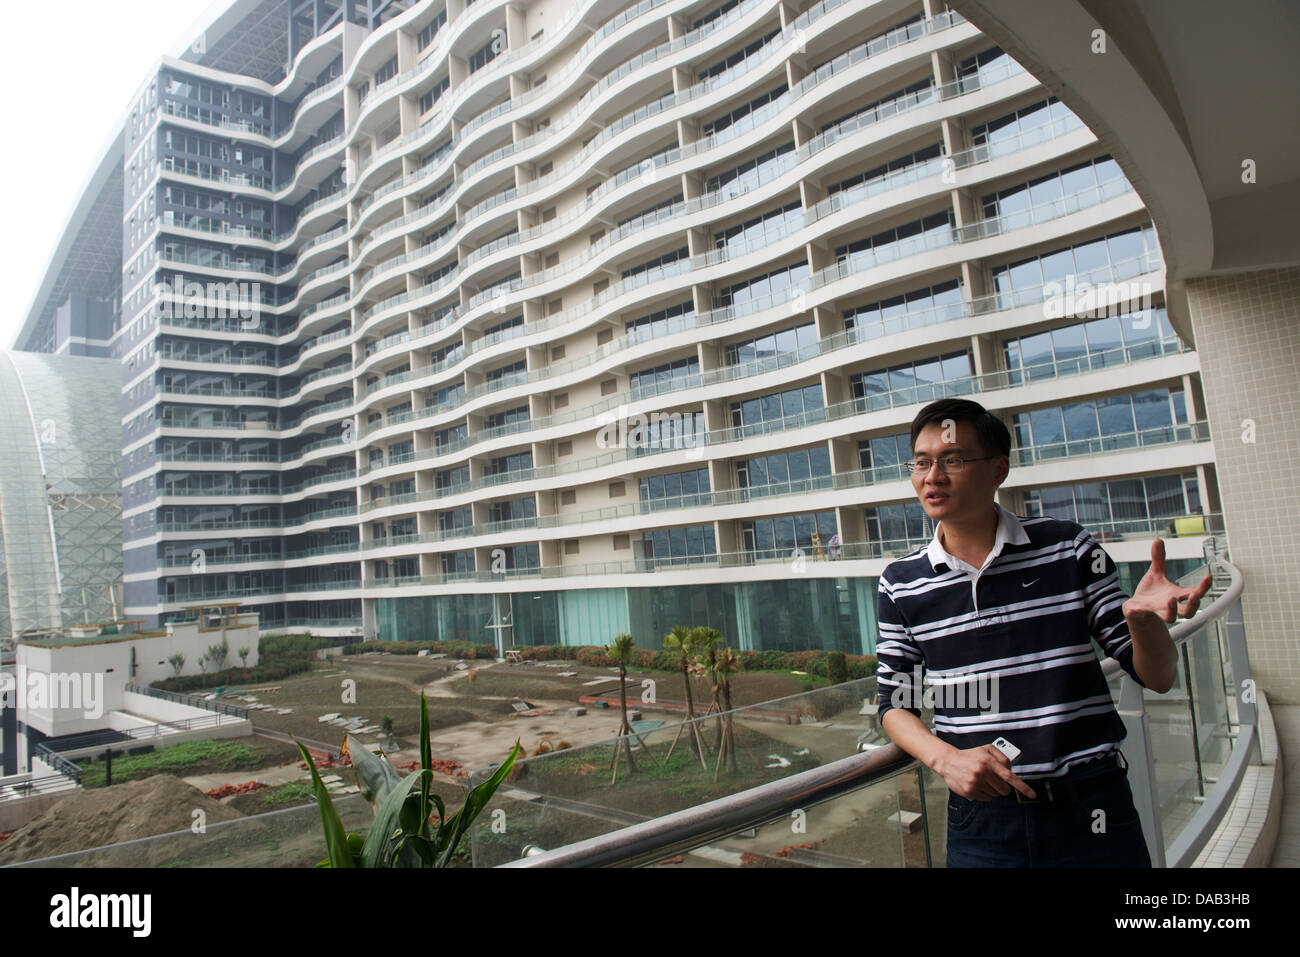 New Century Global Centre in Chengdu, Sichuan province, China. 06-May-2013 - Stock Image